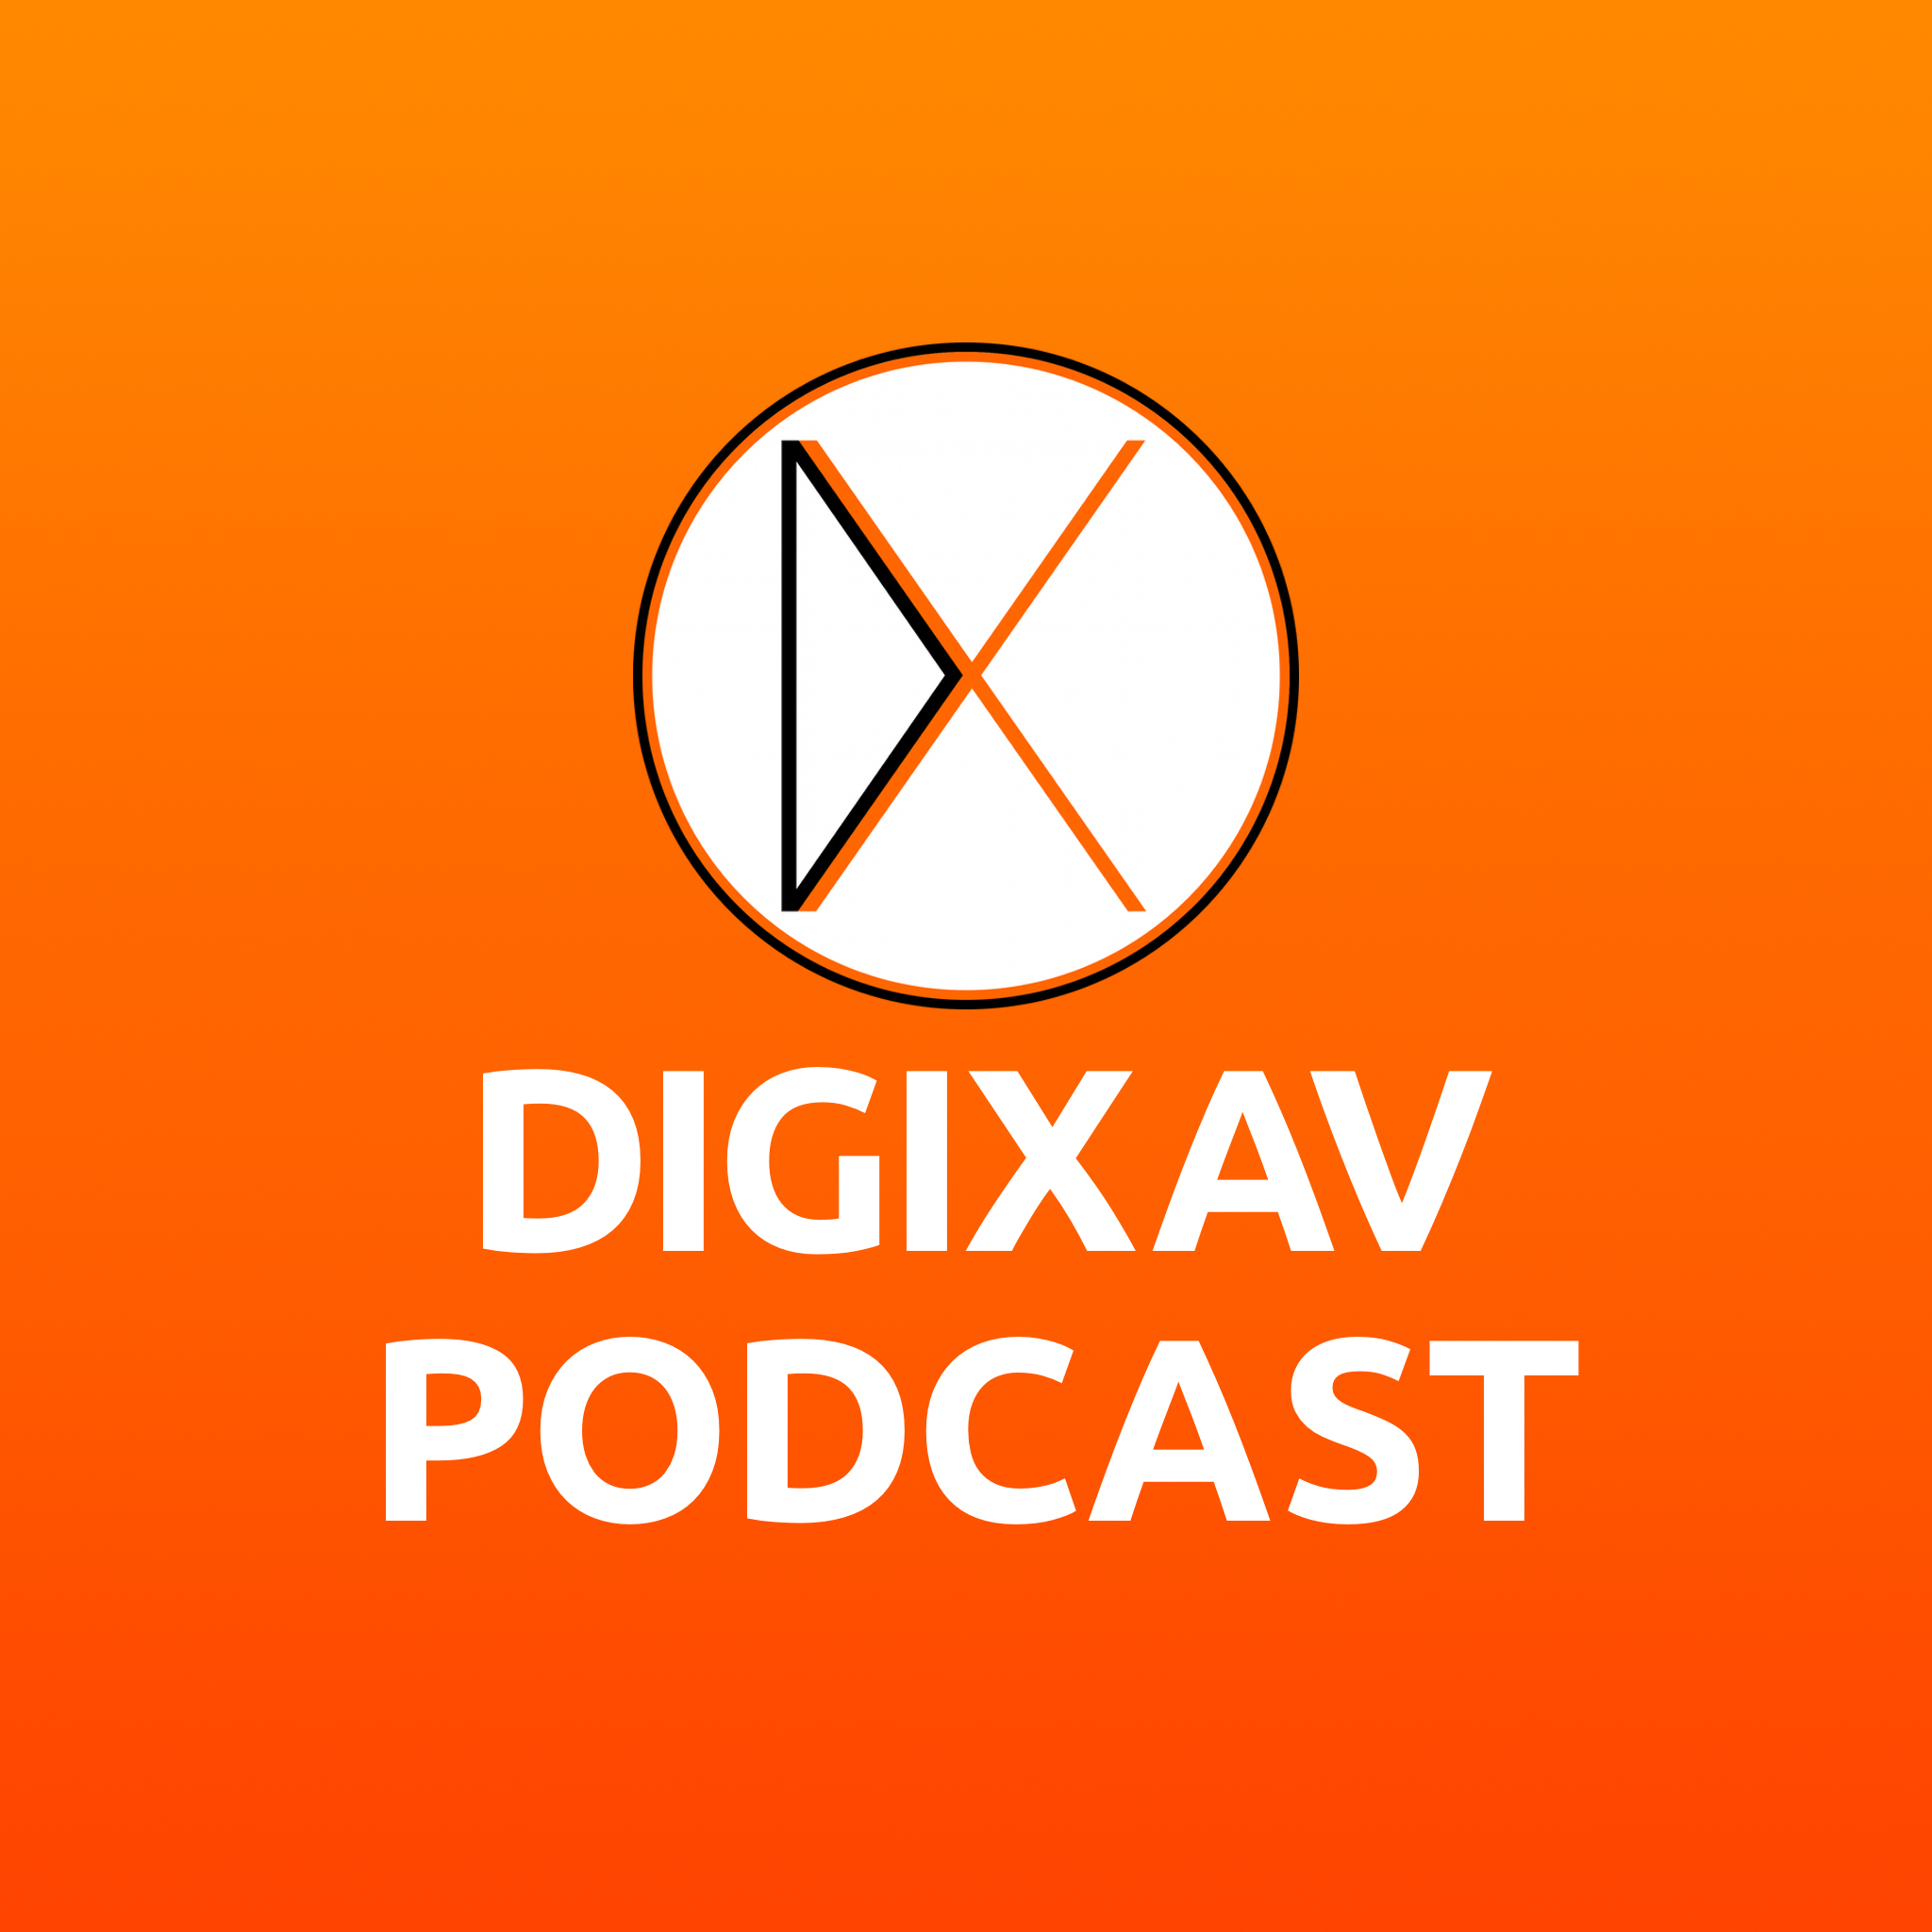 Digixav Podcast